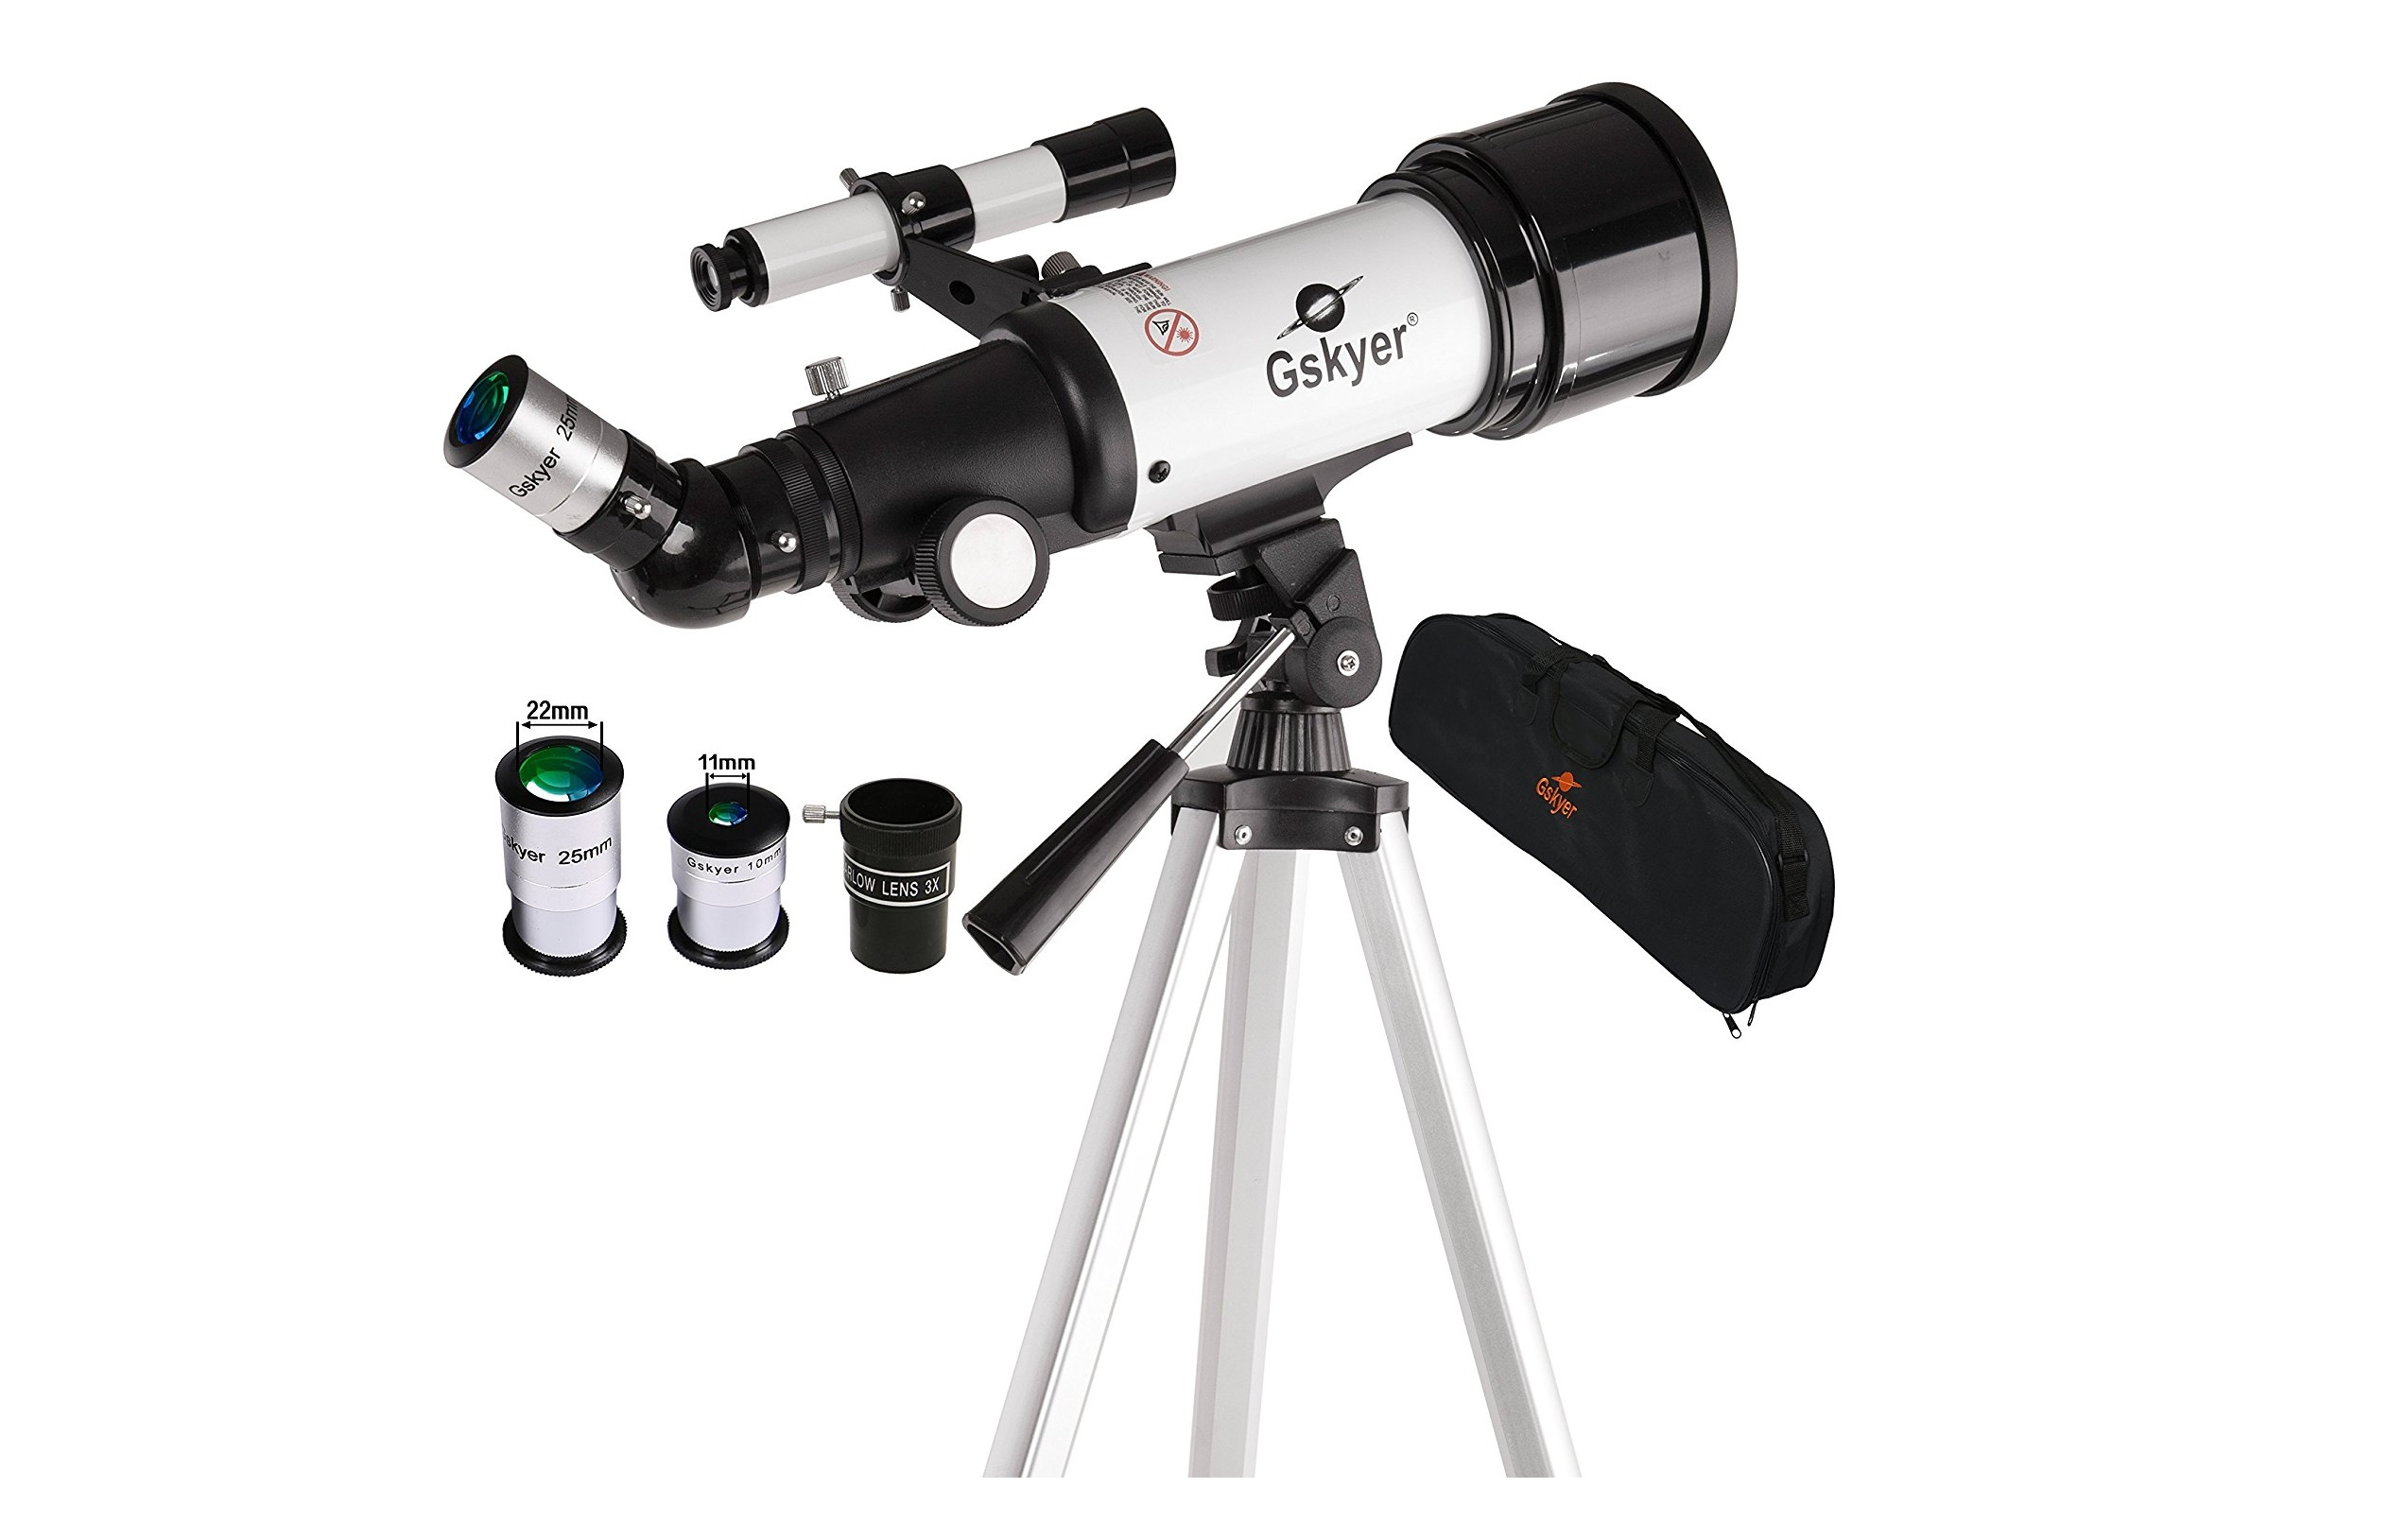 Top 10 Best Telescopes in 2020